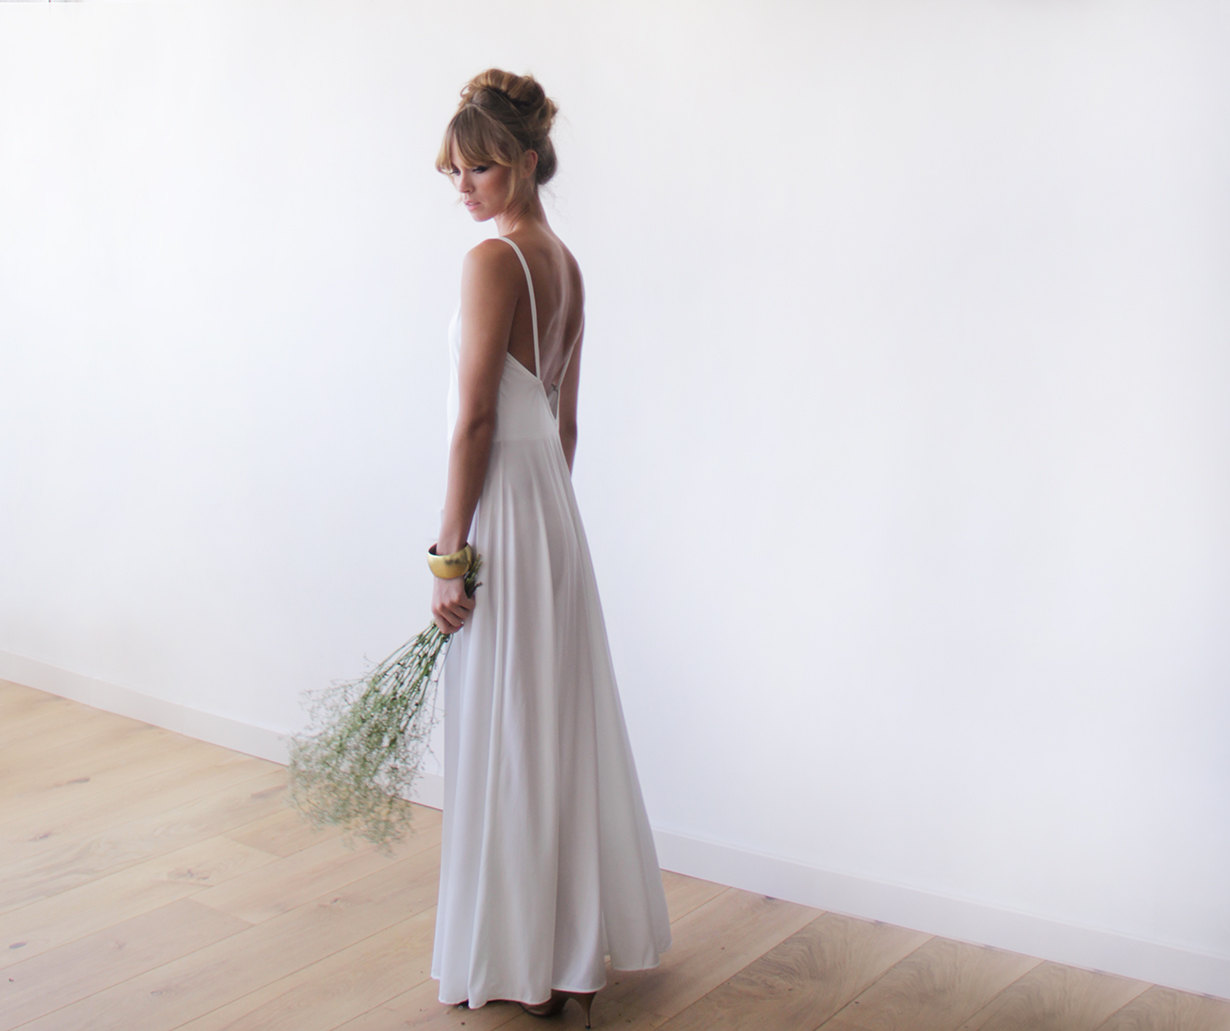 #EpheriellFridayFind – Blush Fashion – Simple Modern Wedding Gowns